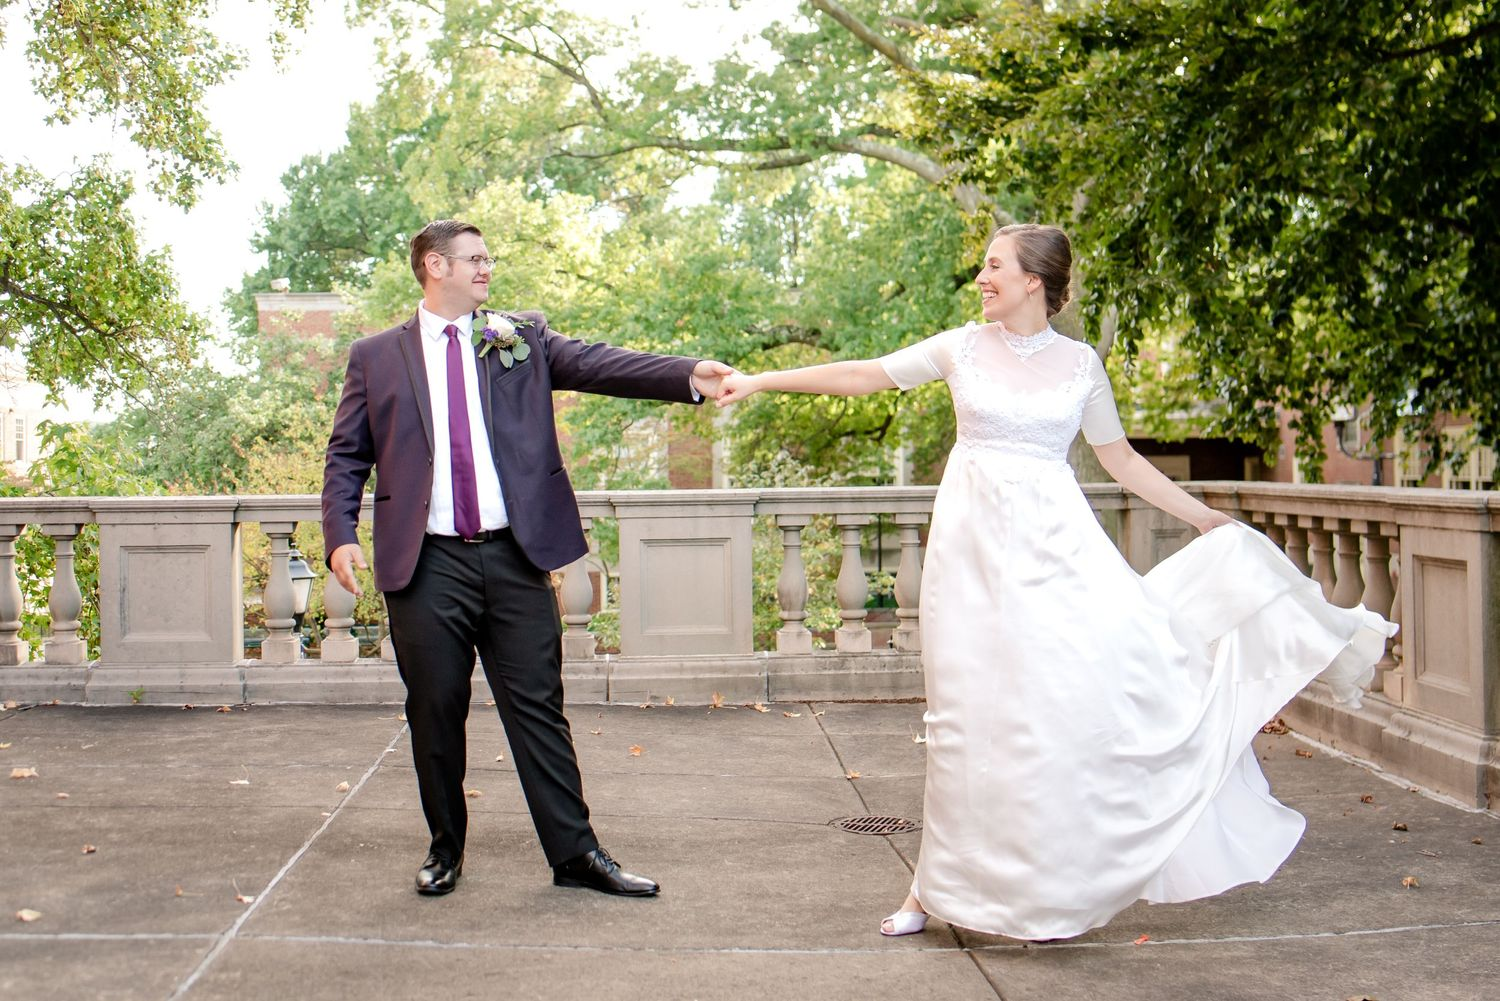 fall wedding in pittsburgh with bride and groom outside of church dancing